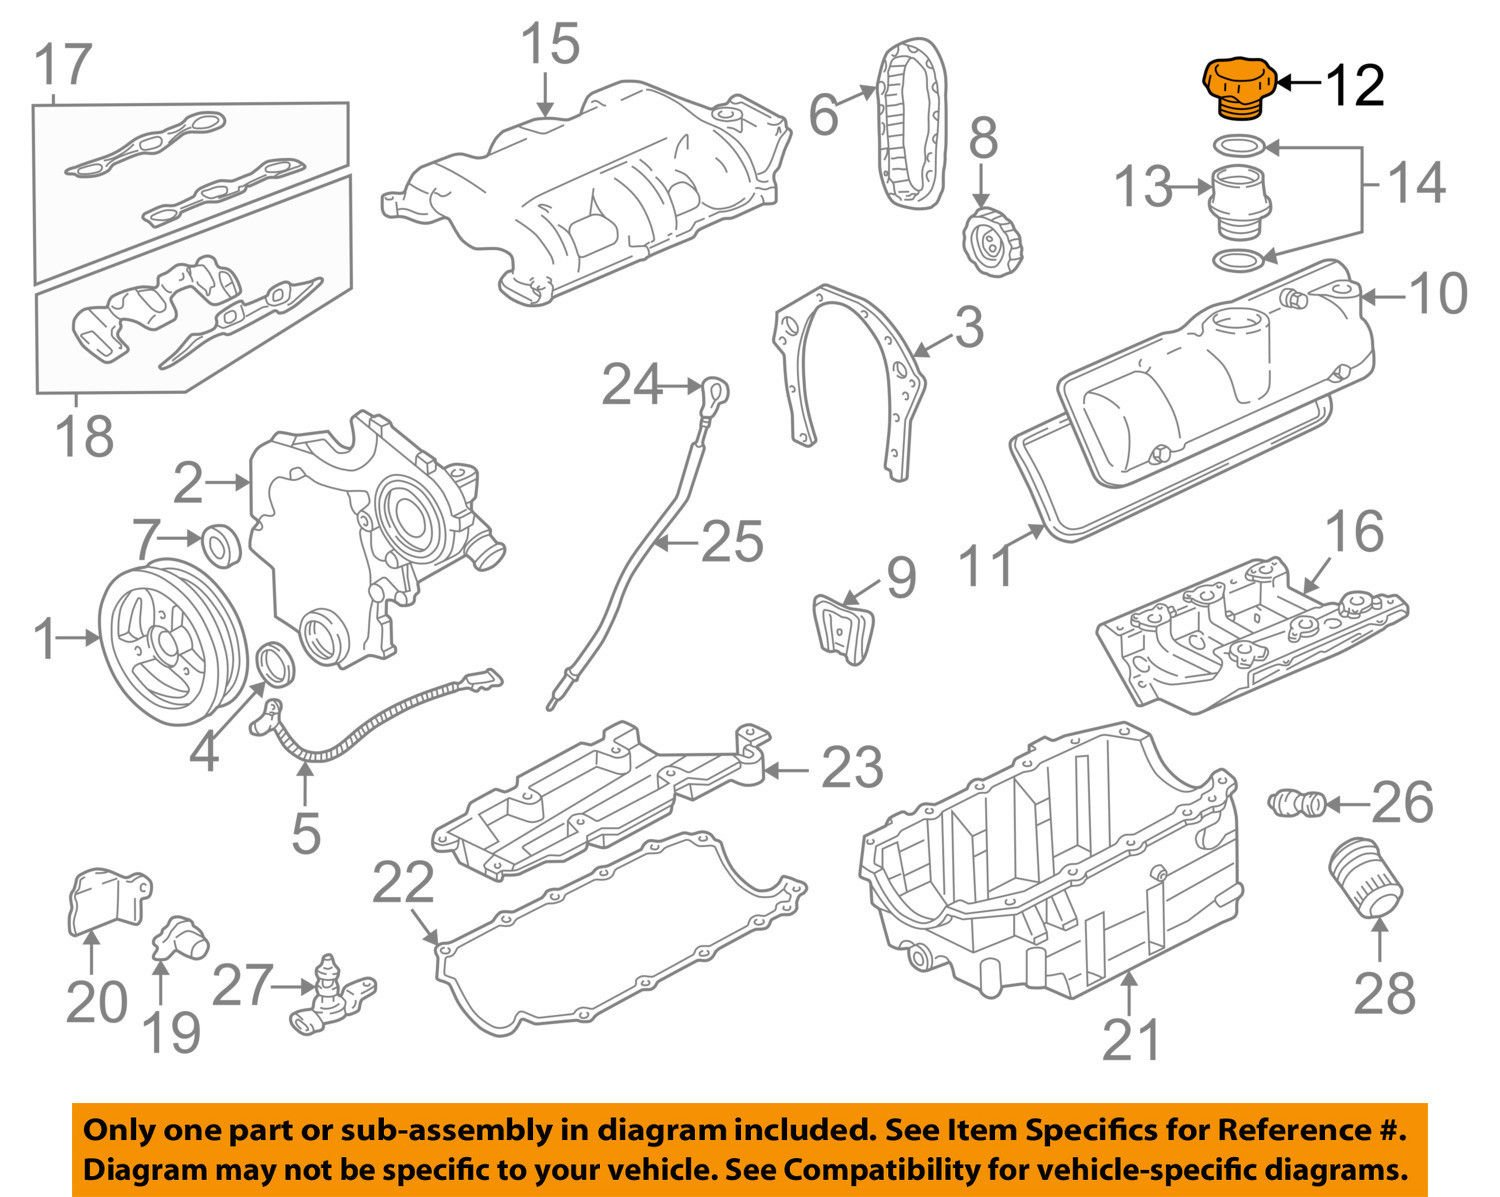 Saturn Sc2 Replacement Parts Motor Repalcement Parts And Diagram